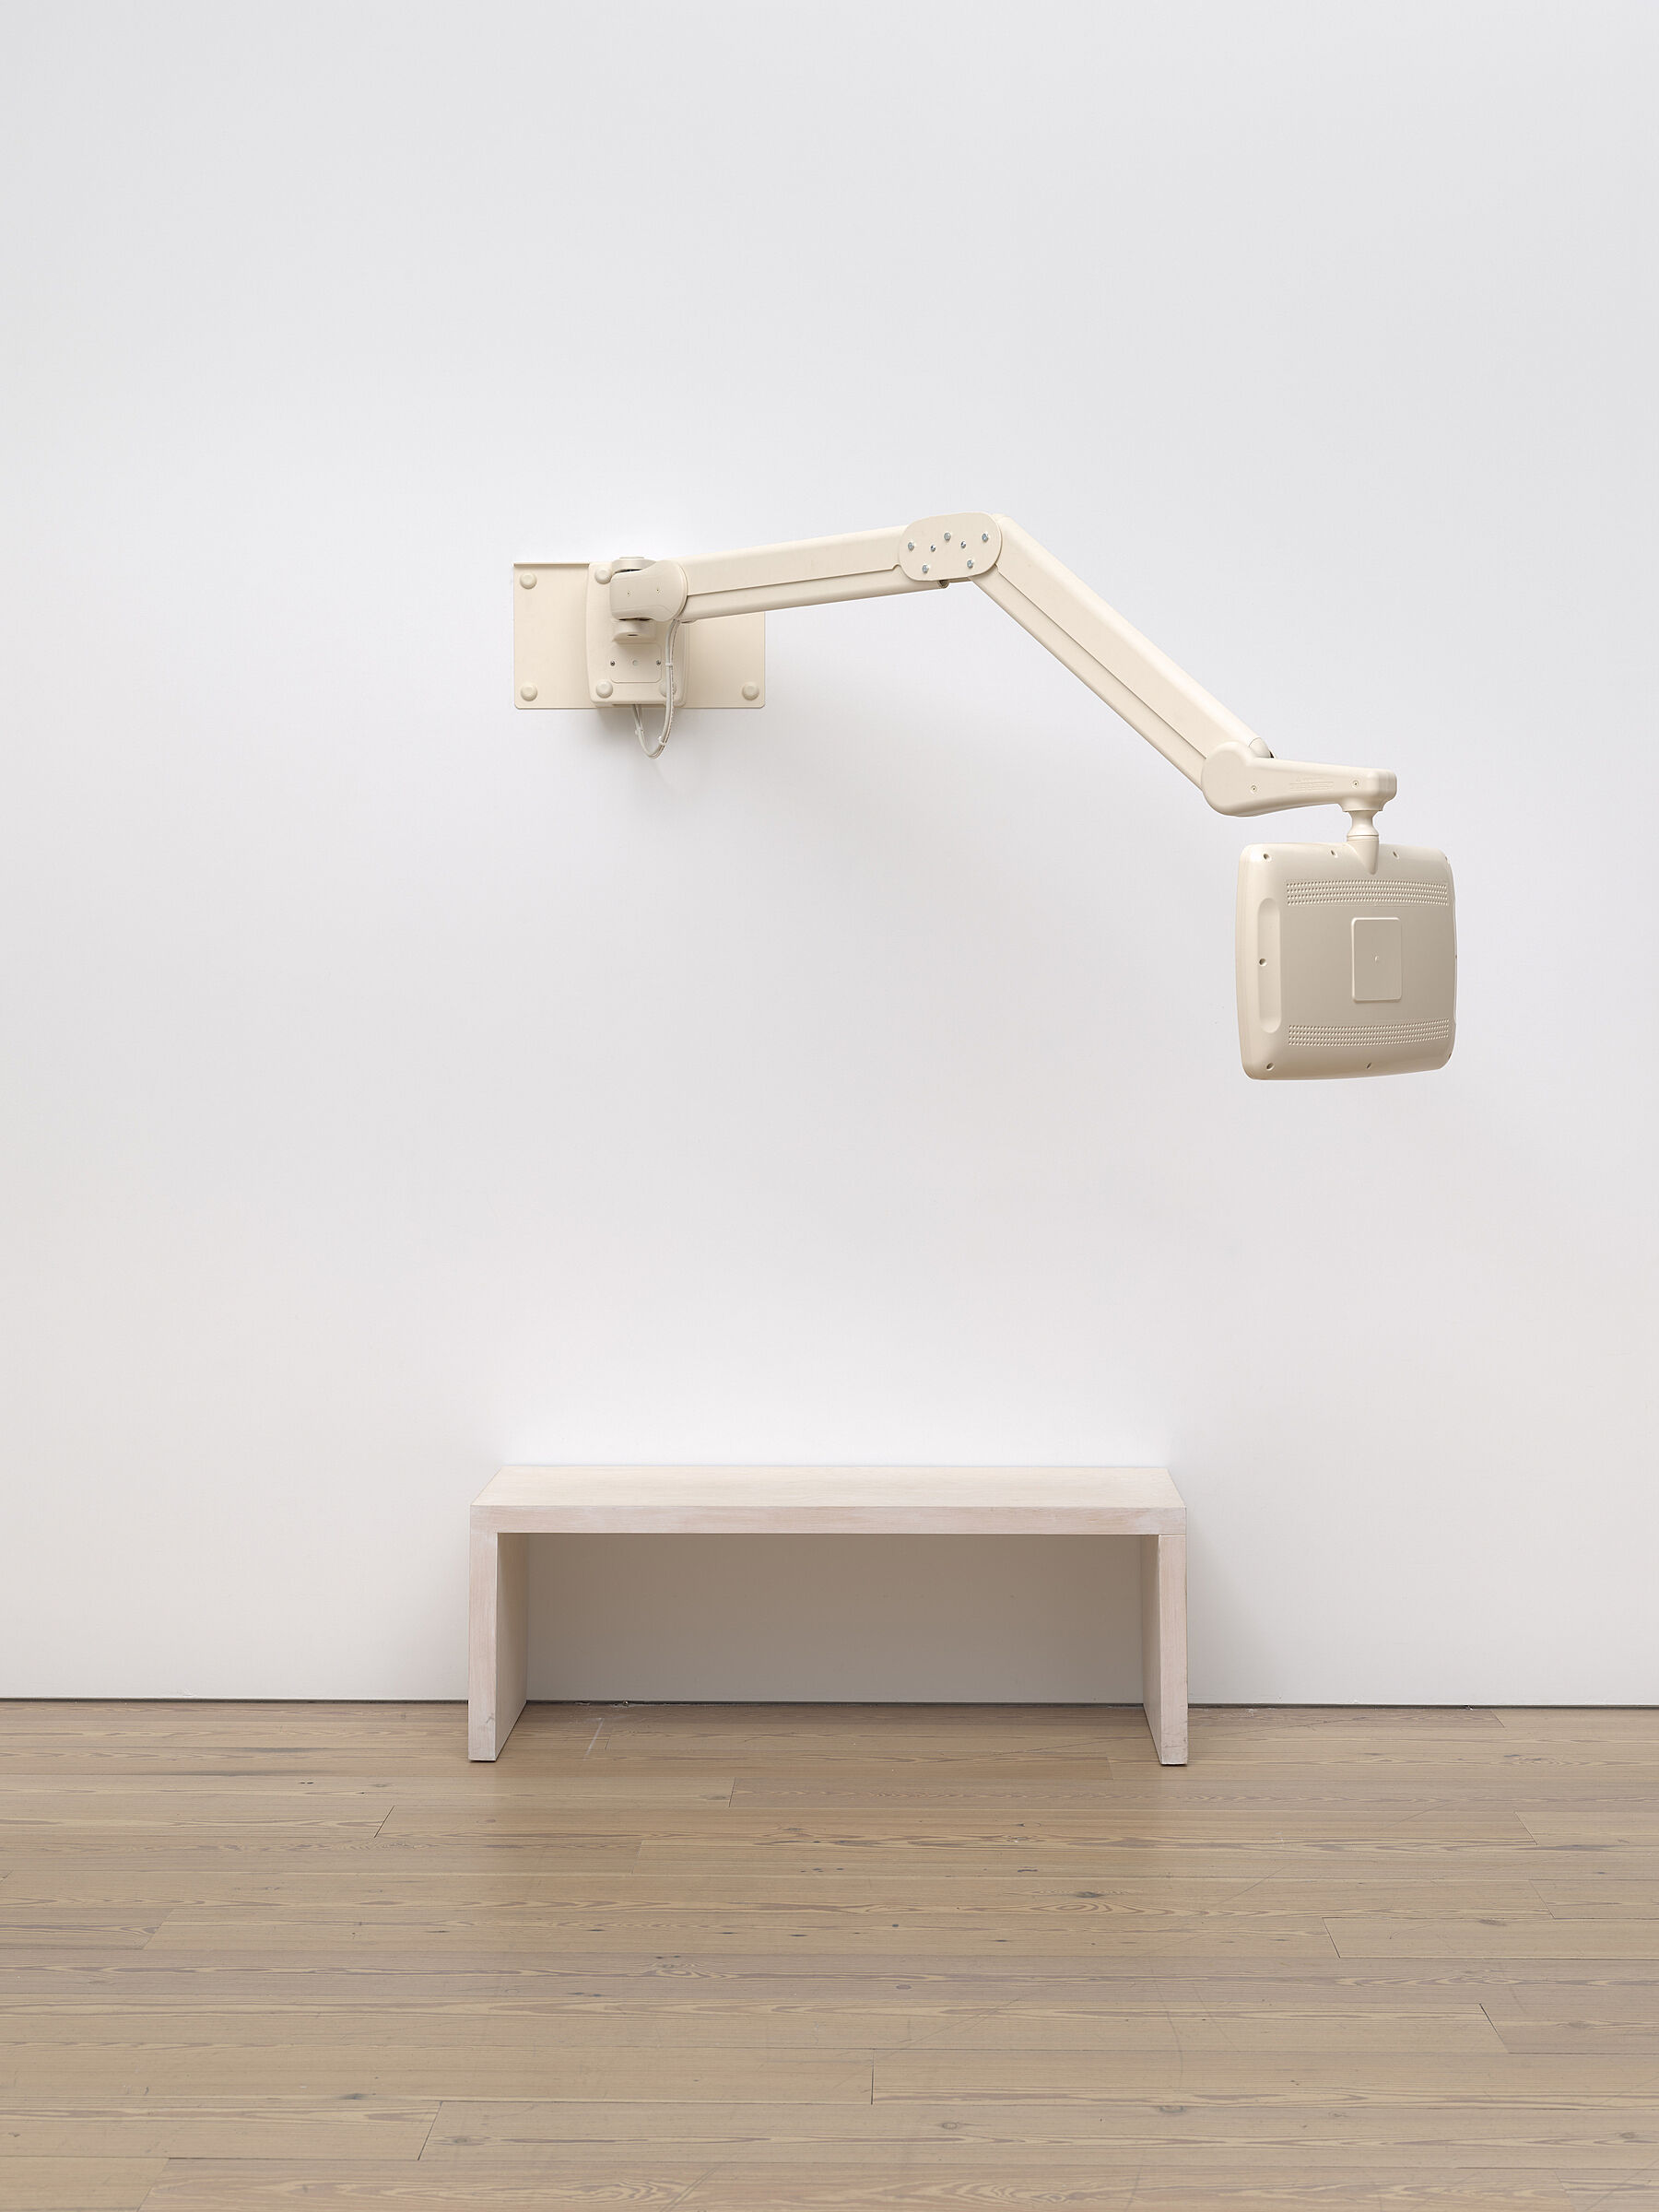 A photograph of a sculpture in a gallery.